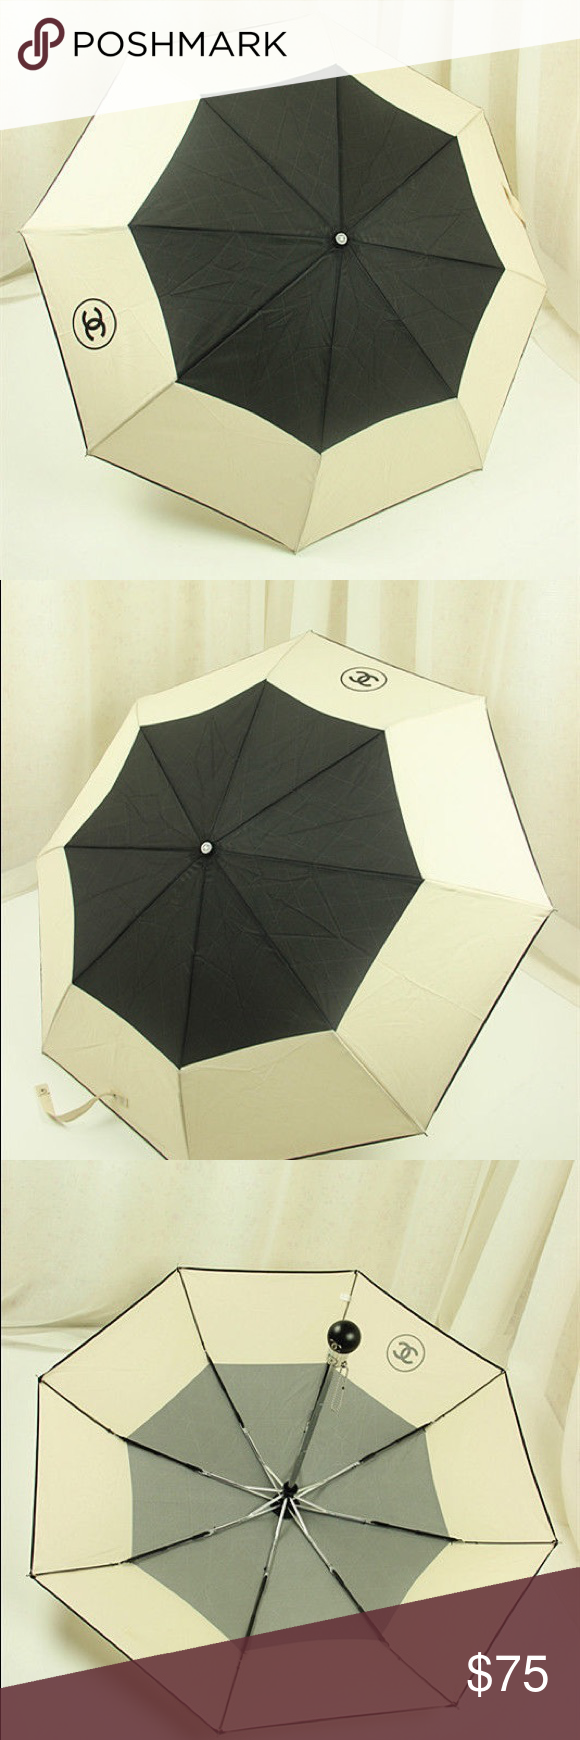 """New Chanel Black and Beige Nylon Camellia Umbrella ️PRICE IS FIRM❗️ New Never Used. High quality. Not orig.  Chanel stylish black and beige nylon umbrella in Chanel box  The chic umbrella comes with a quilted nylon carrying case on a silver metal chain strap.   Measurements  The diameter measures 38.5 inches open from point to point The chrome metal handle measures 20"""" inches in length CHANEL Accessories Umbrellas"""